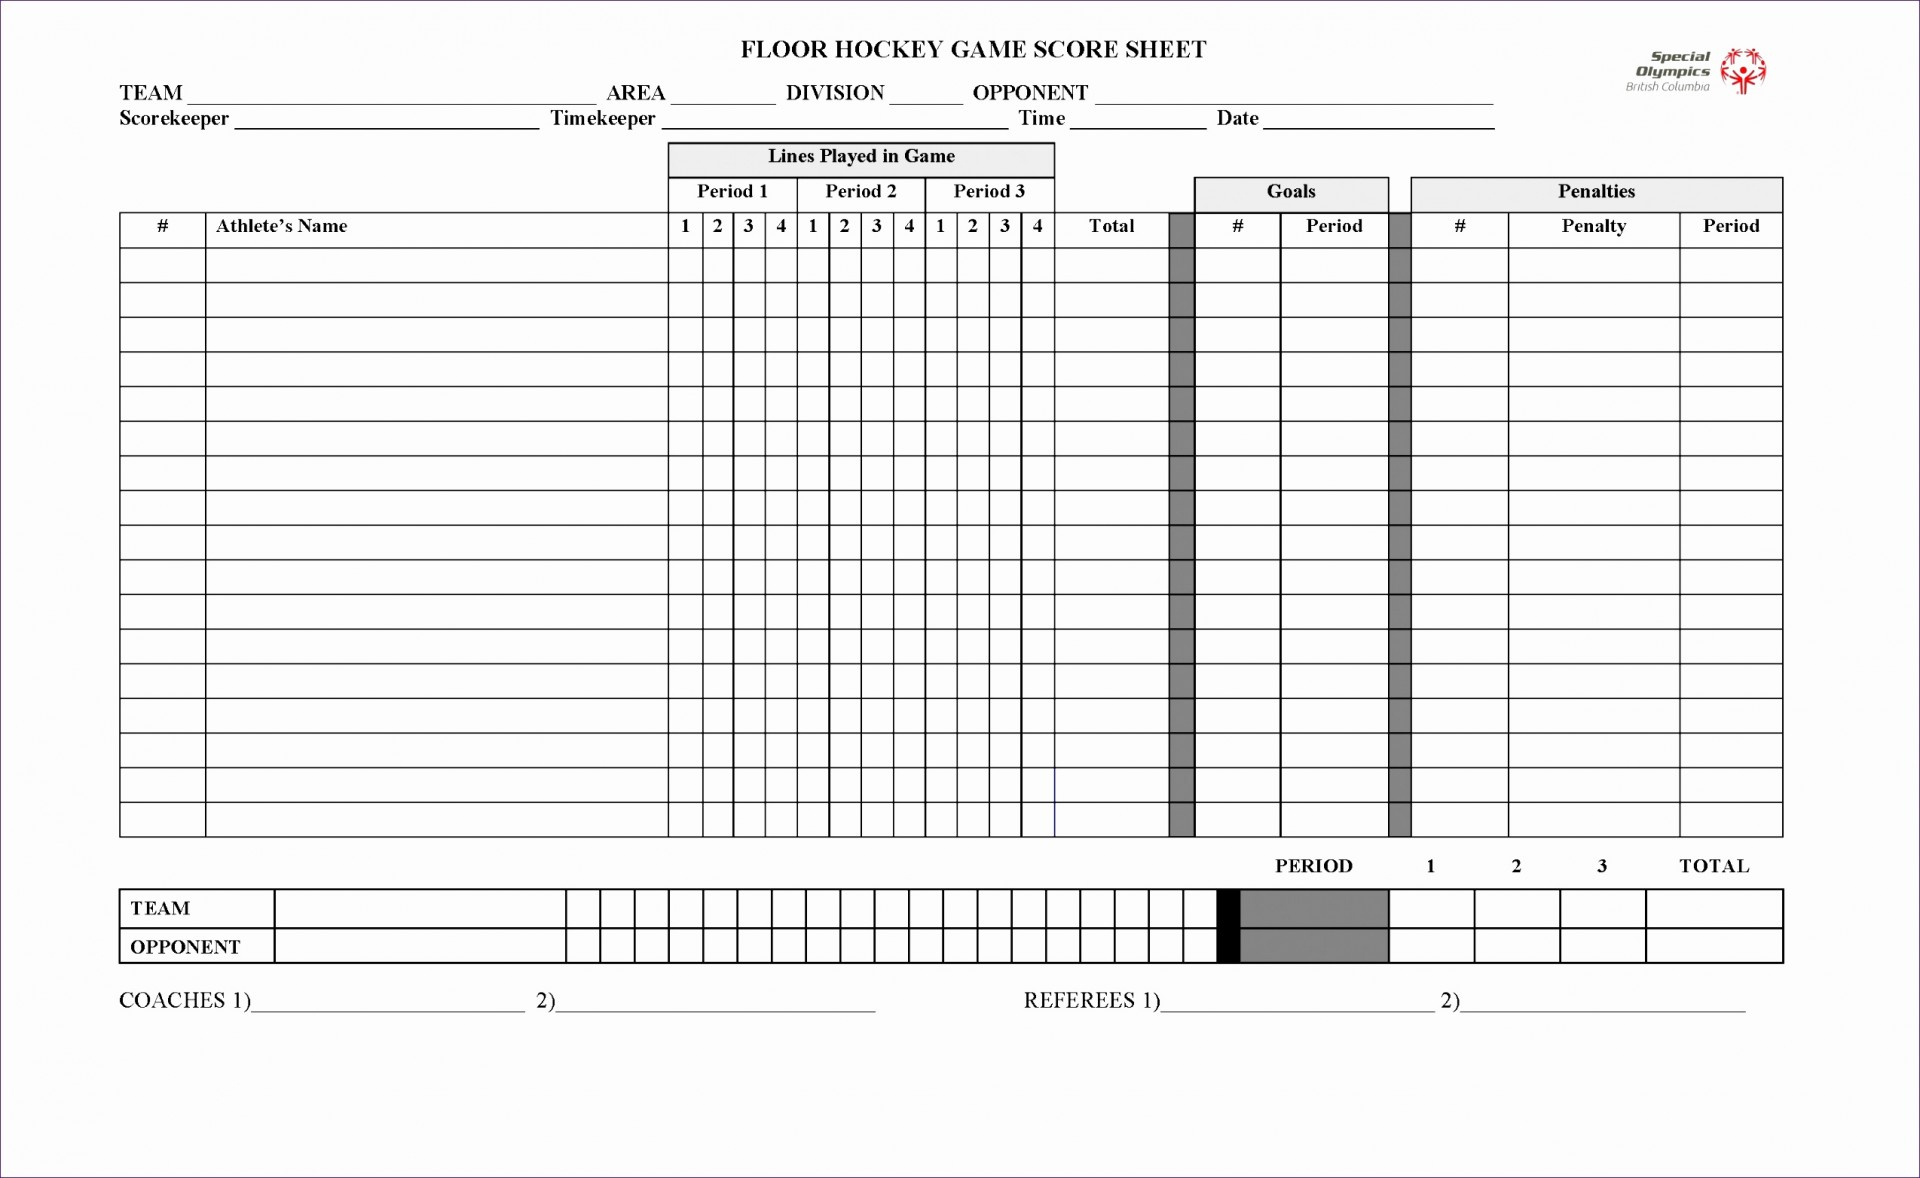 Baseball Card Excel Spreadsheet Intended For 015 Softball Lineup Template Excel Ideas Baseball Card Elegant Free